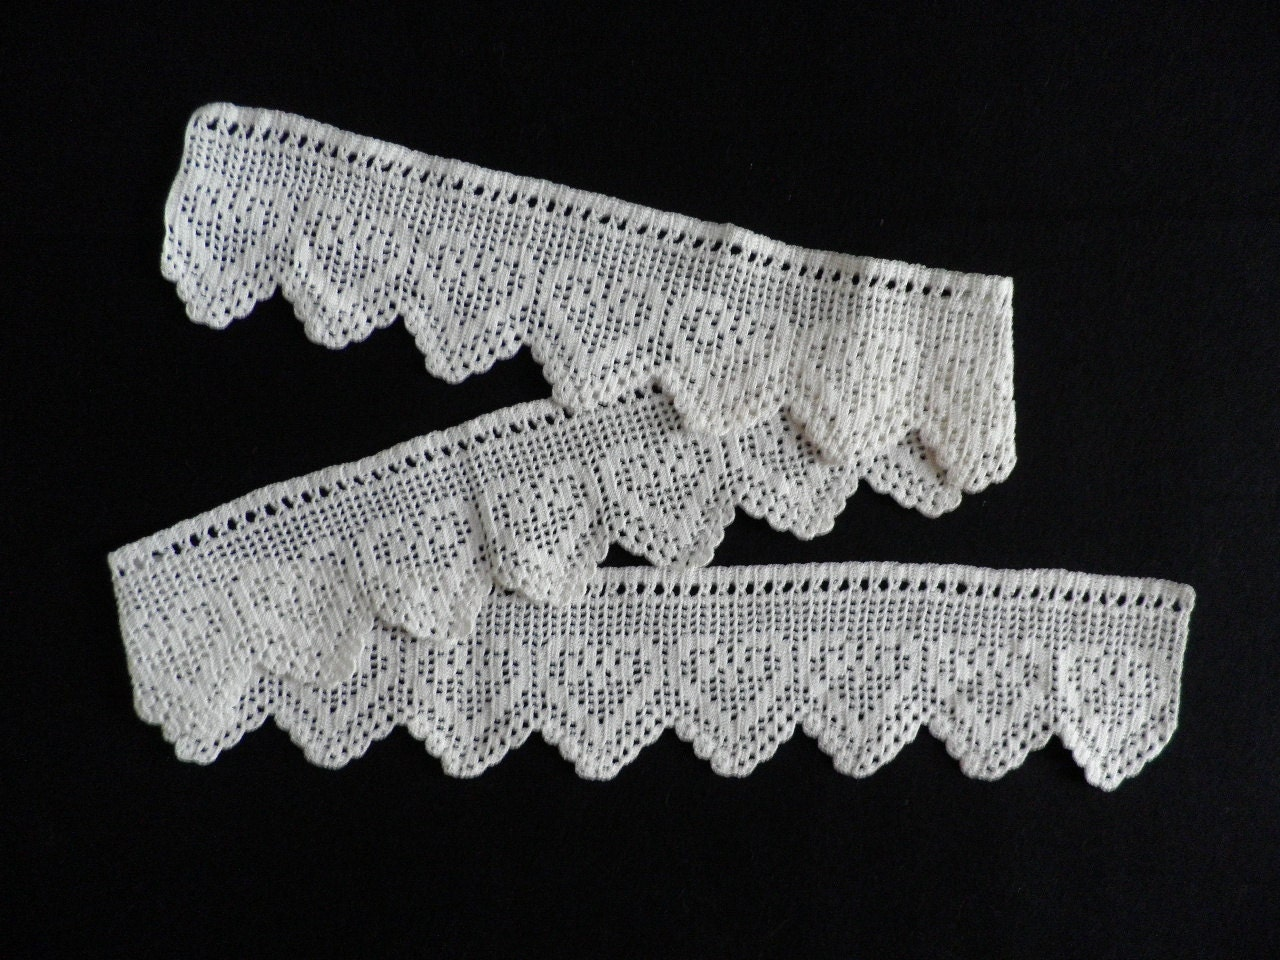 Crocheted Lace Edging Vintage White Heart Pattern by locolace